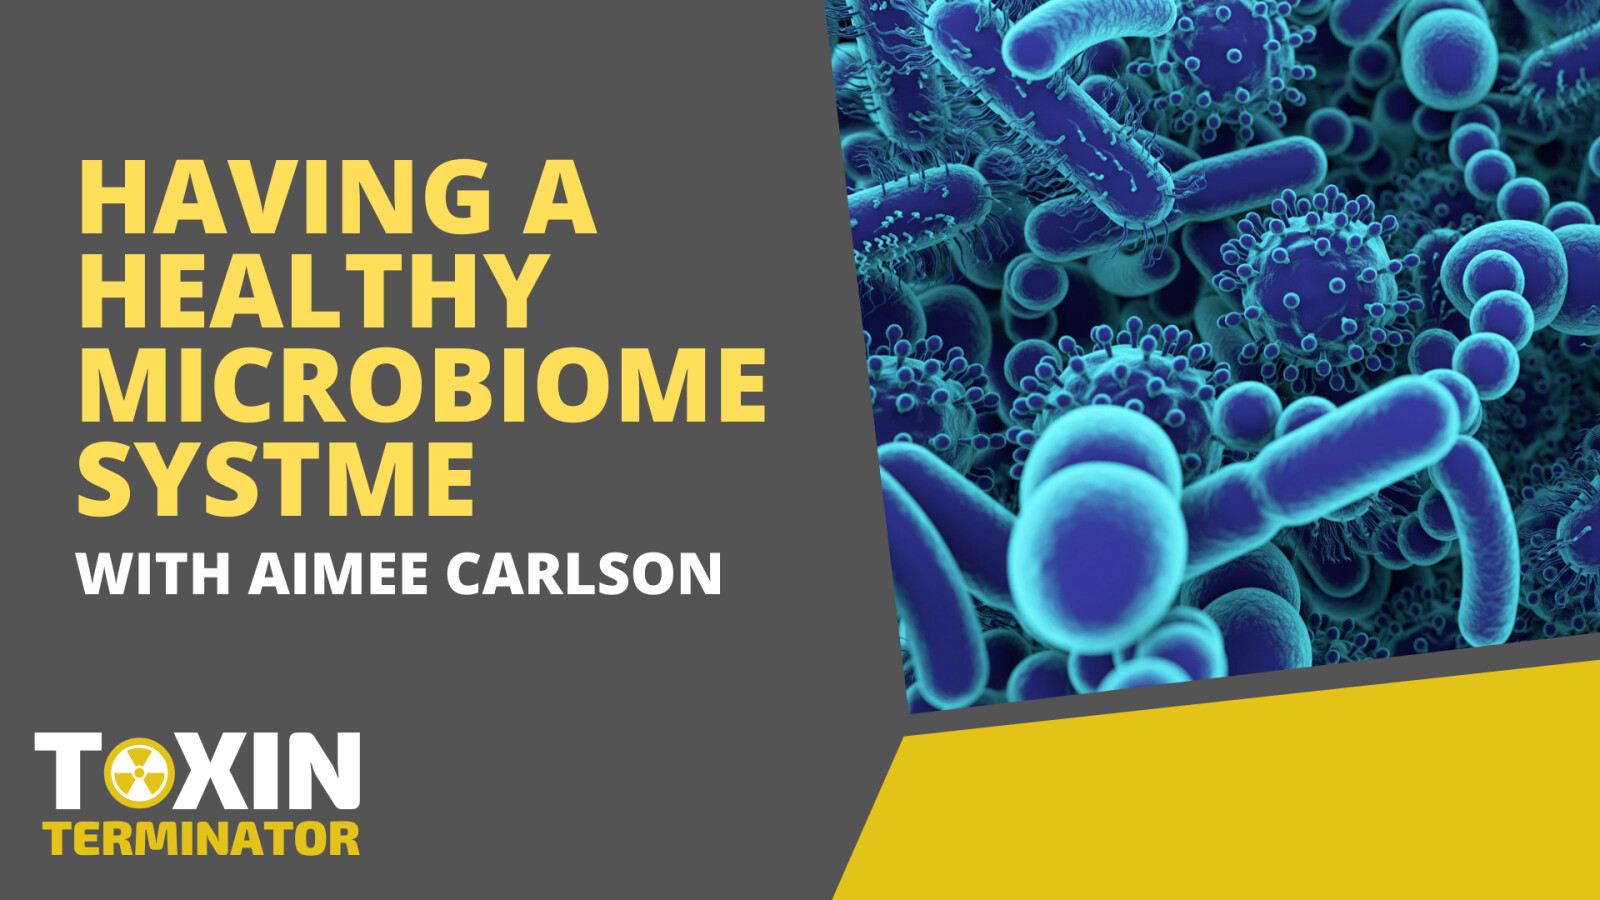 Having a Healthy Microbiome System